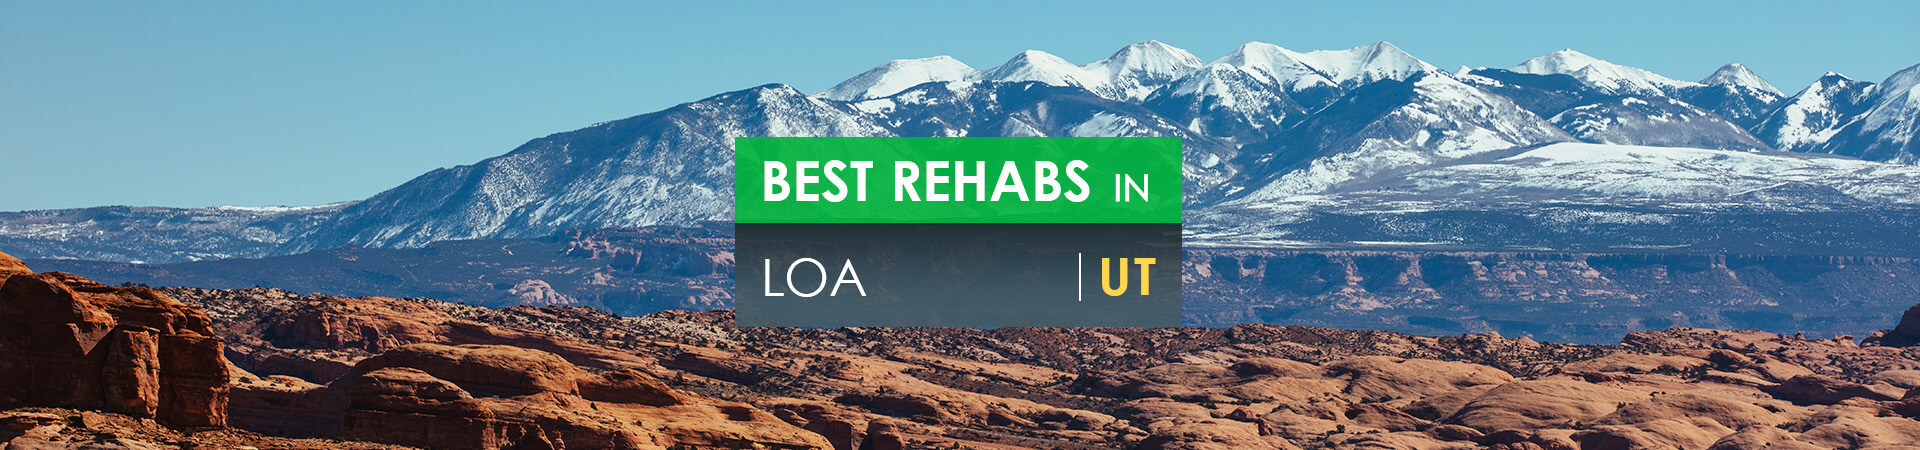 Best rehabs in Loa, UT